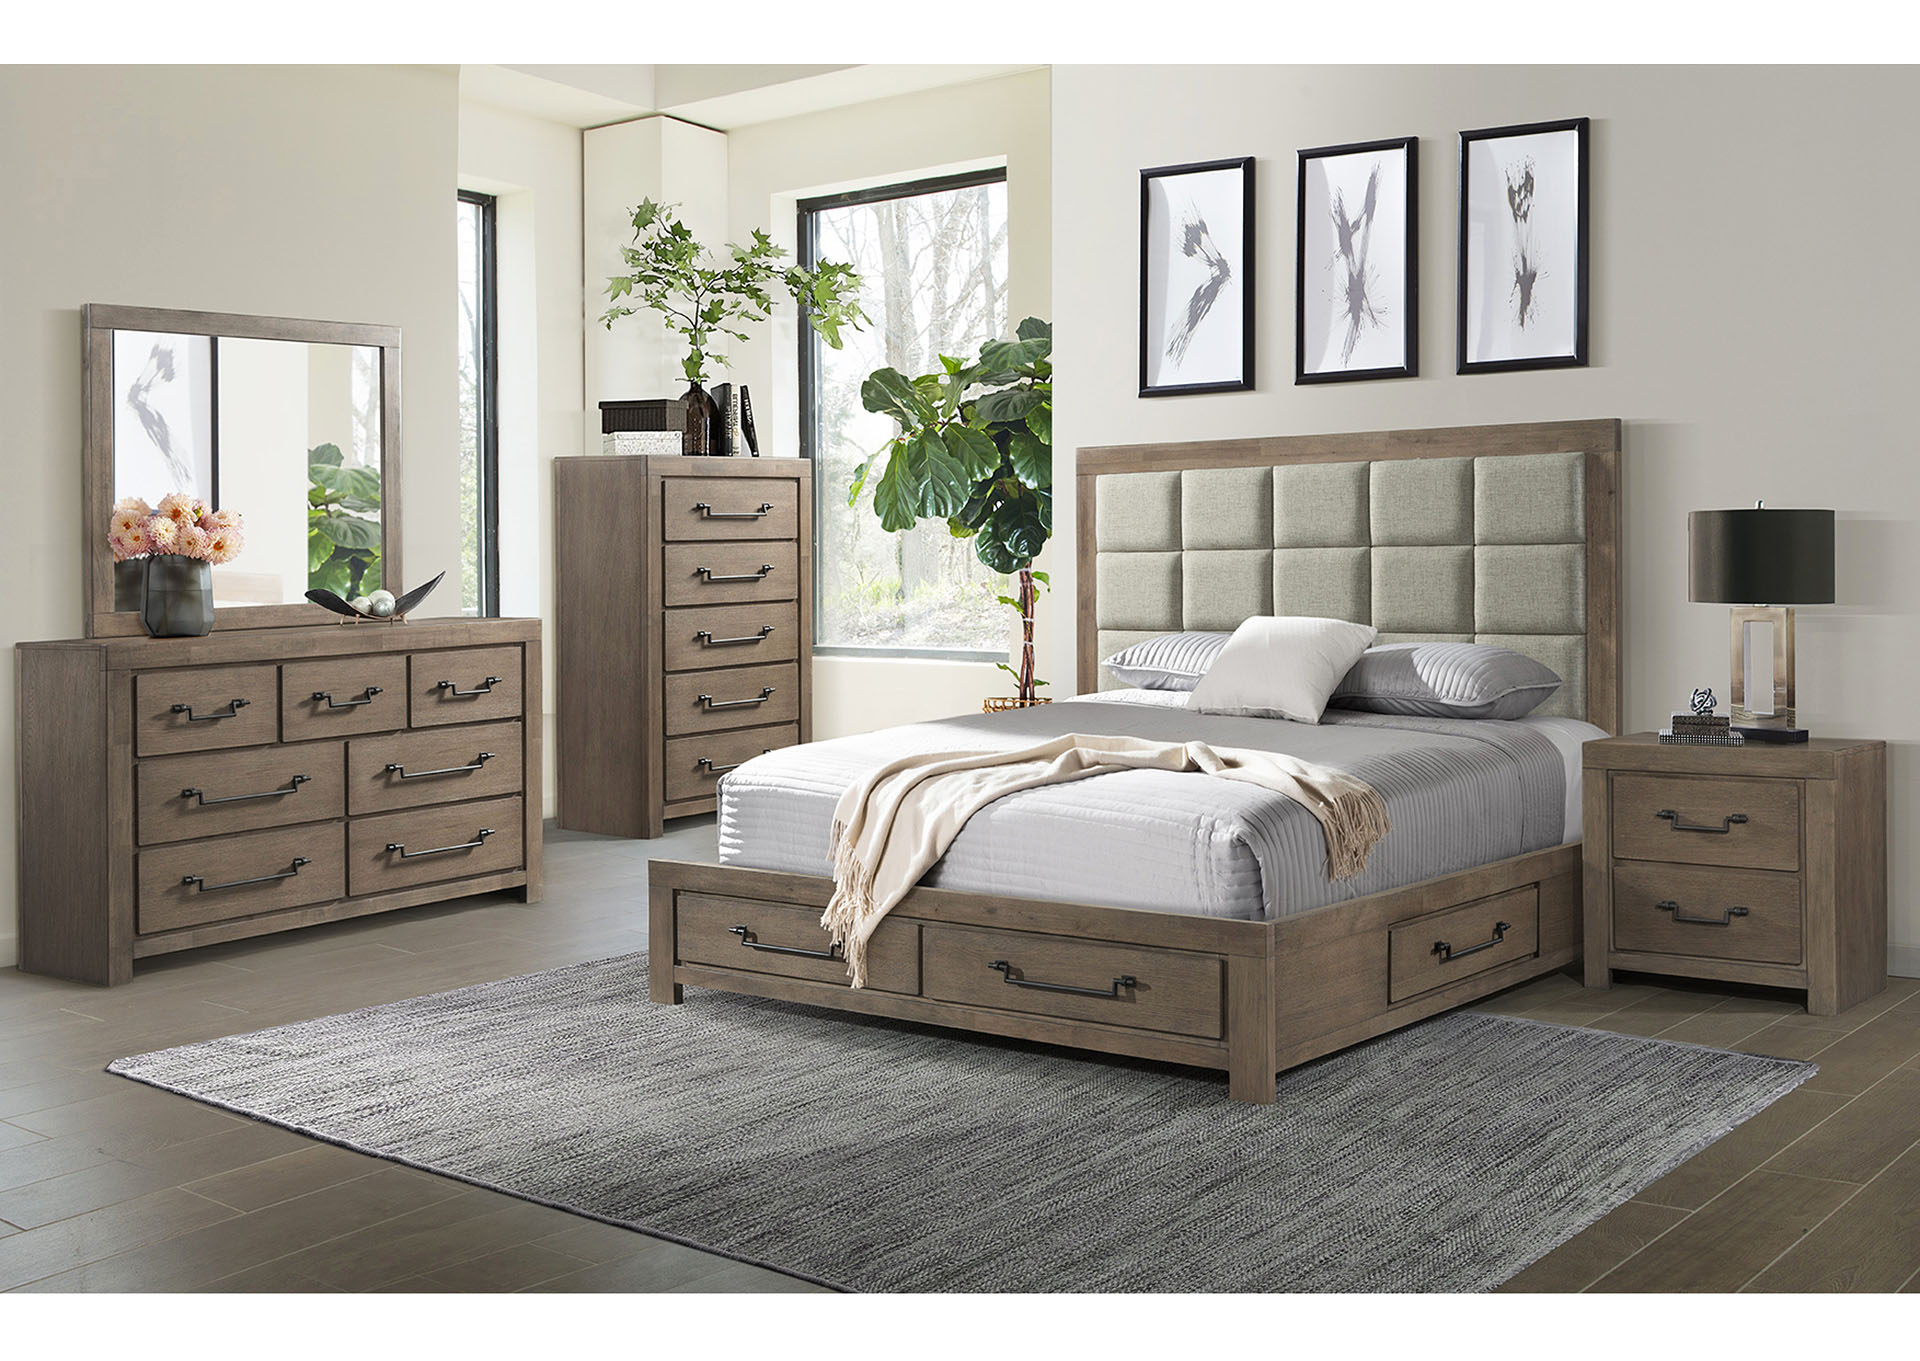 1054 Urban Swag Queen Storage Bed,Lane Furniture